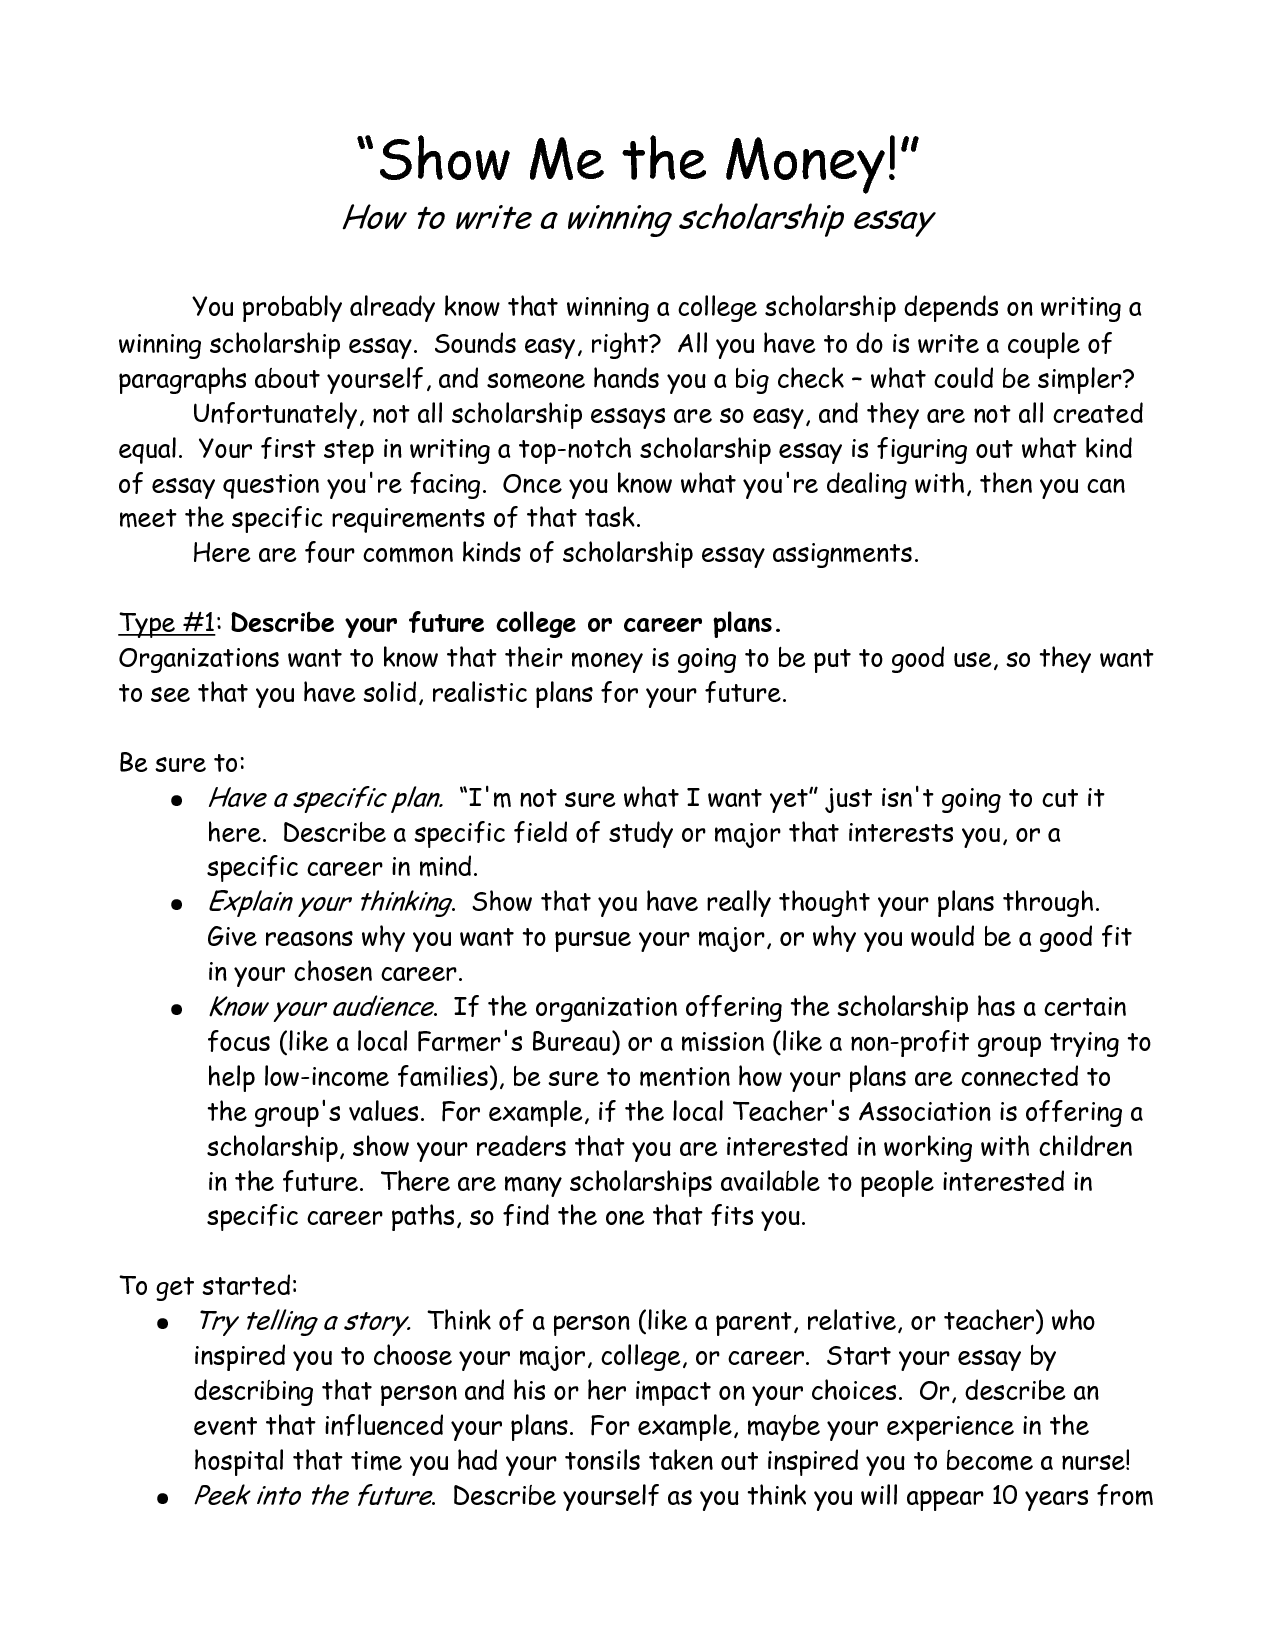 002 Writing Scholarship Essay Excellent A Good Keys To Winning Full